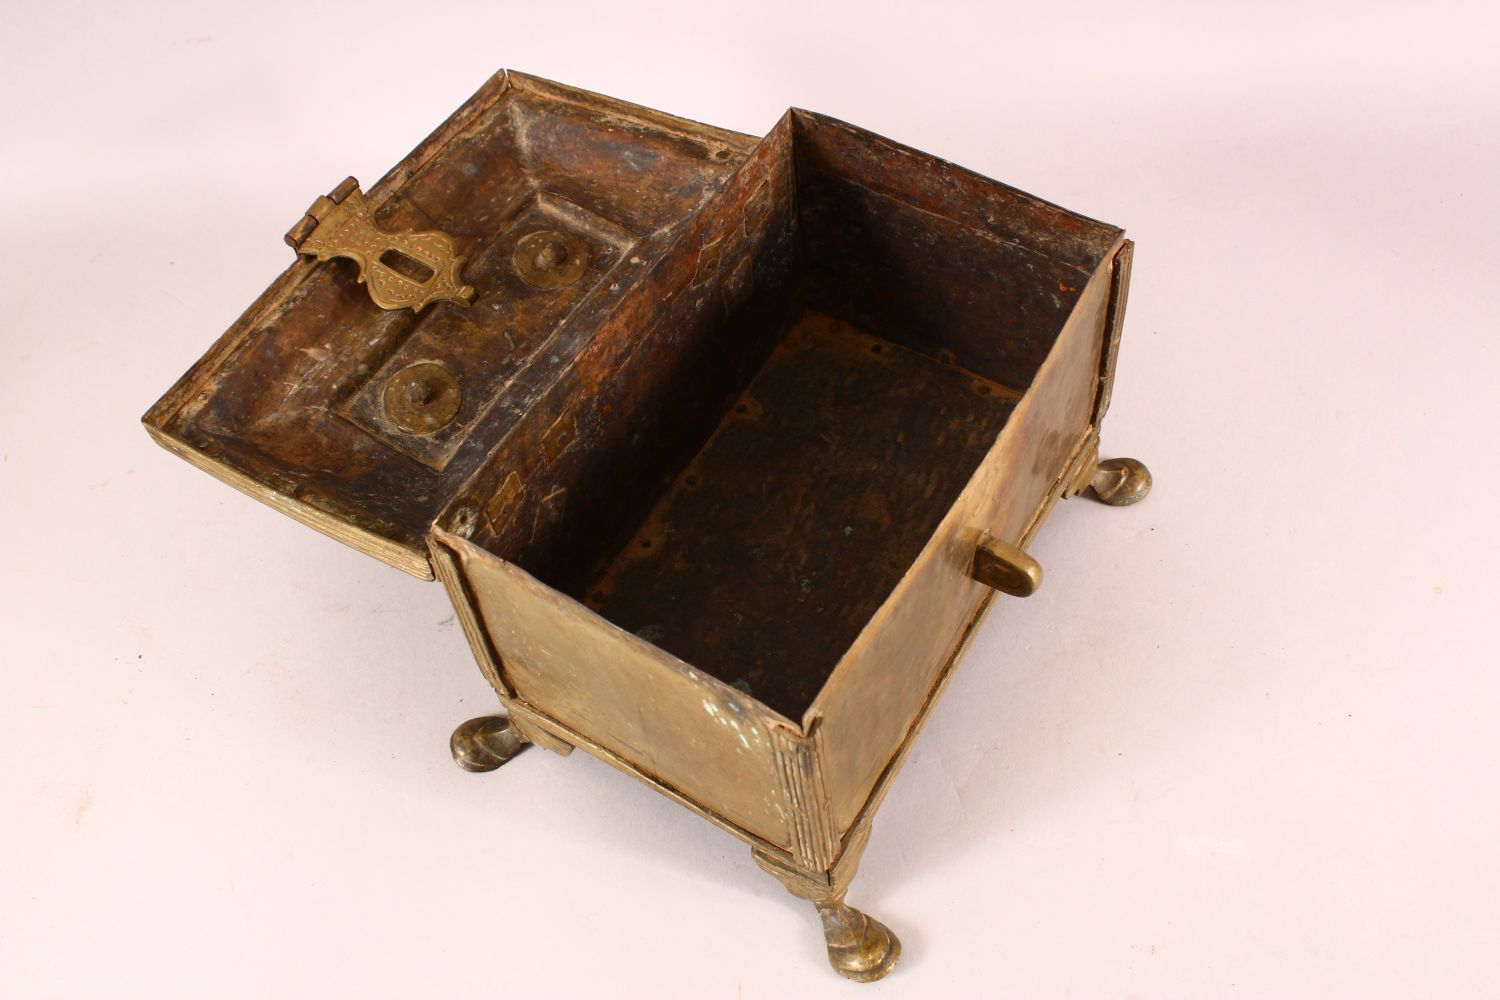 A LARGE 19TH CENTURY INDIAN BASS CASKET, with hinged lid, supported on four legs, 28cm long, 16cm - Image 2 of 4